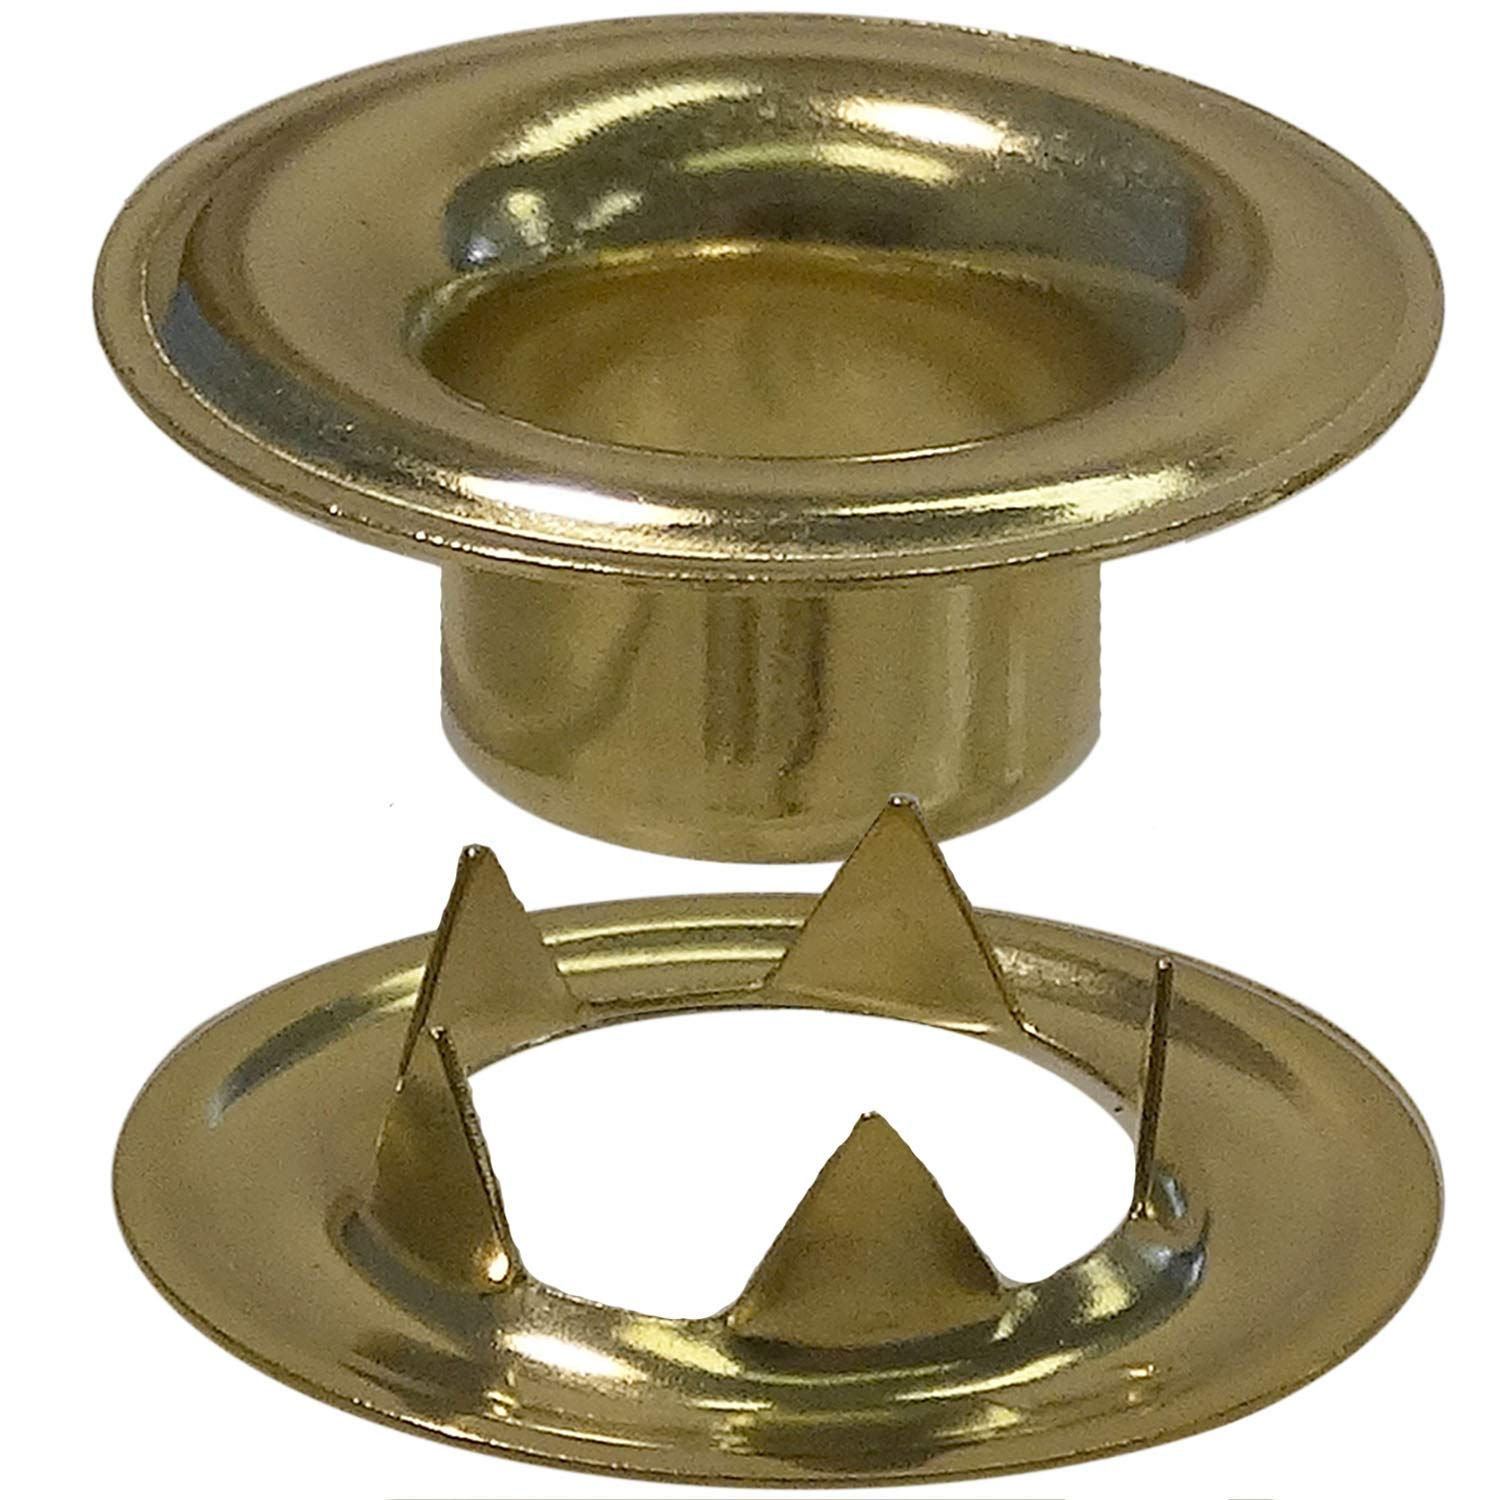 Stimpson Sheet Metal Grommet and Teeth Washer Brass Durable, Reliable, Heavy-Duty #5 Set (3,600 Pieces of Each) by Stimpson Co., Inc. (Image #1)